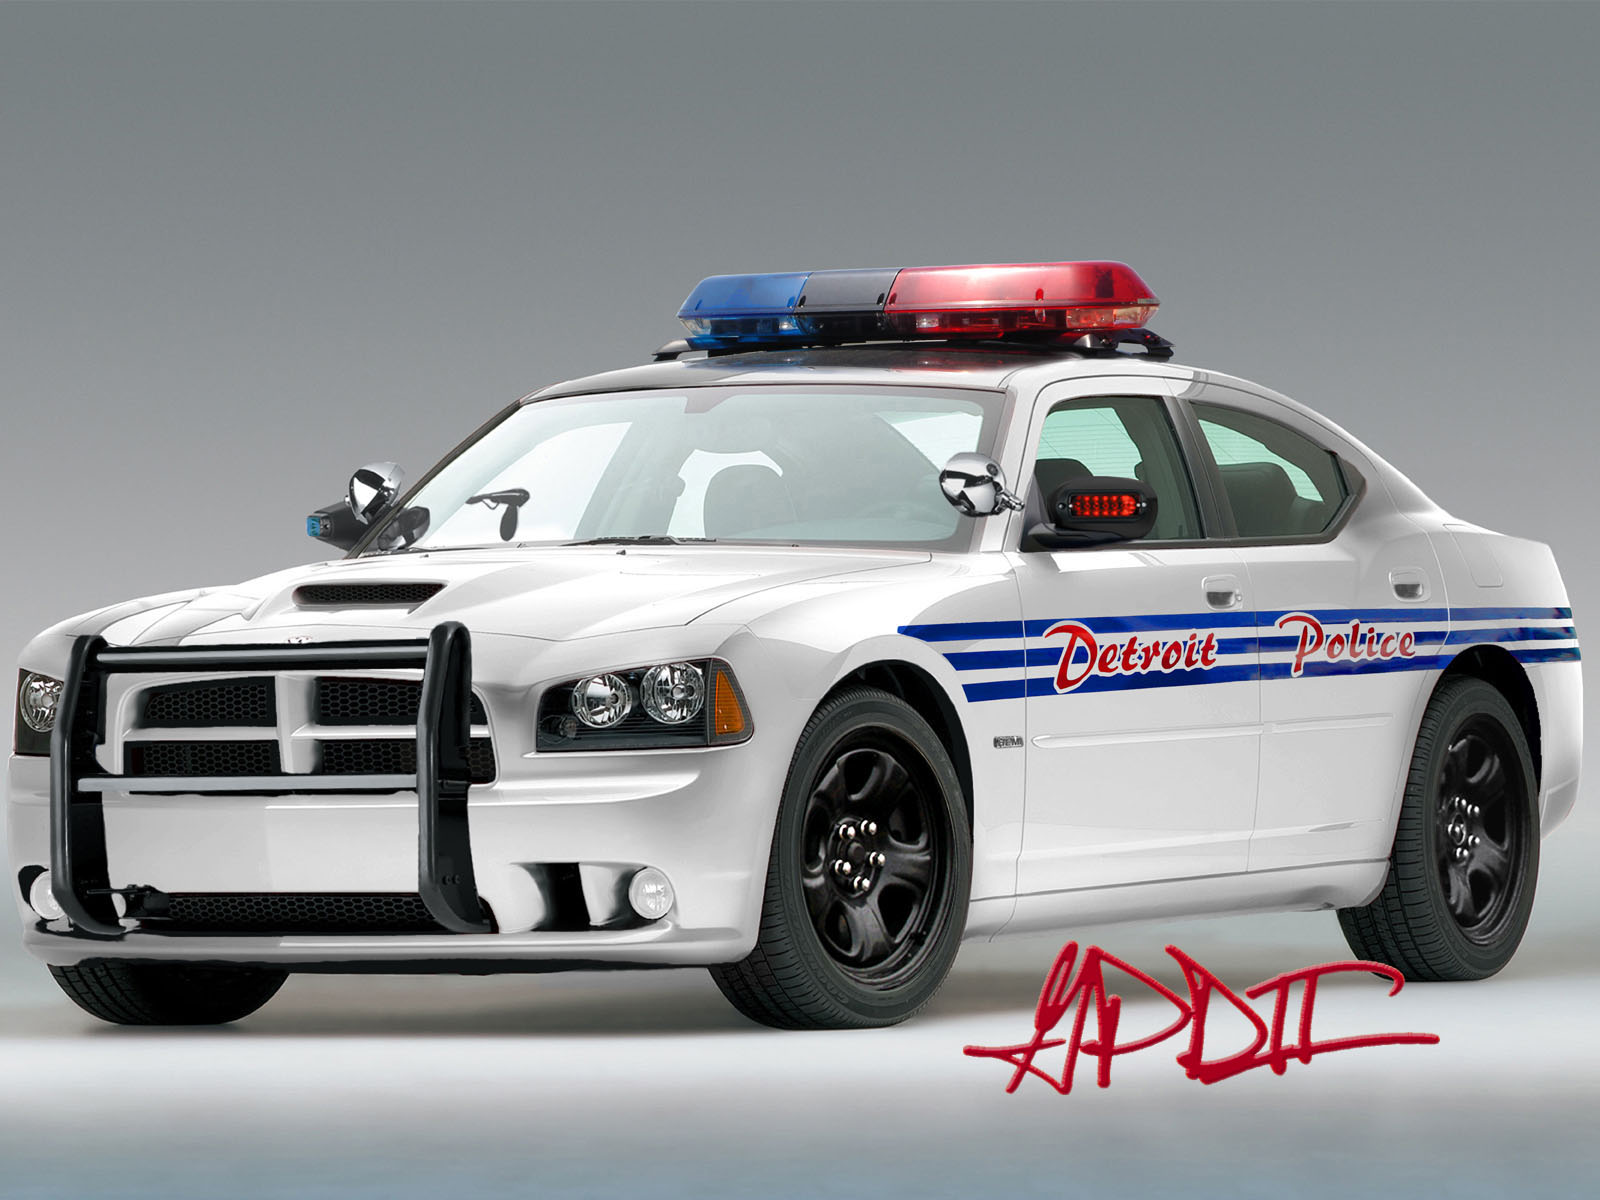 Dodge charger Police car 4